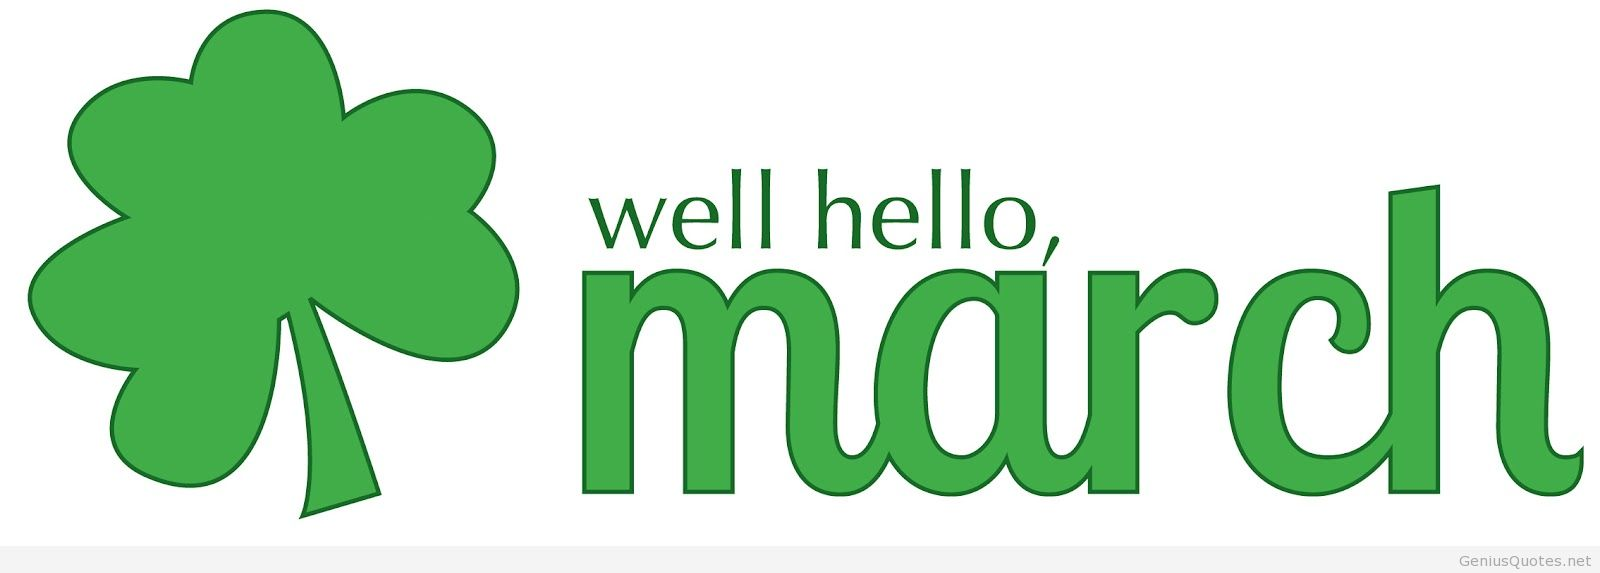 Welcome March Images for Facebook